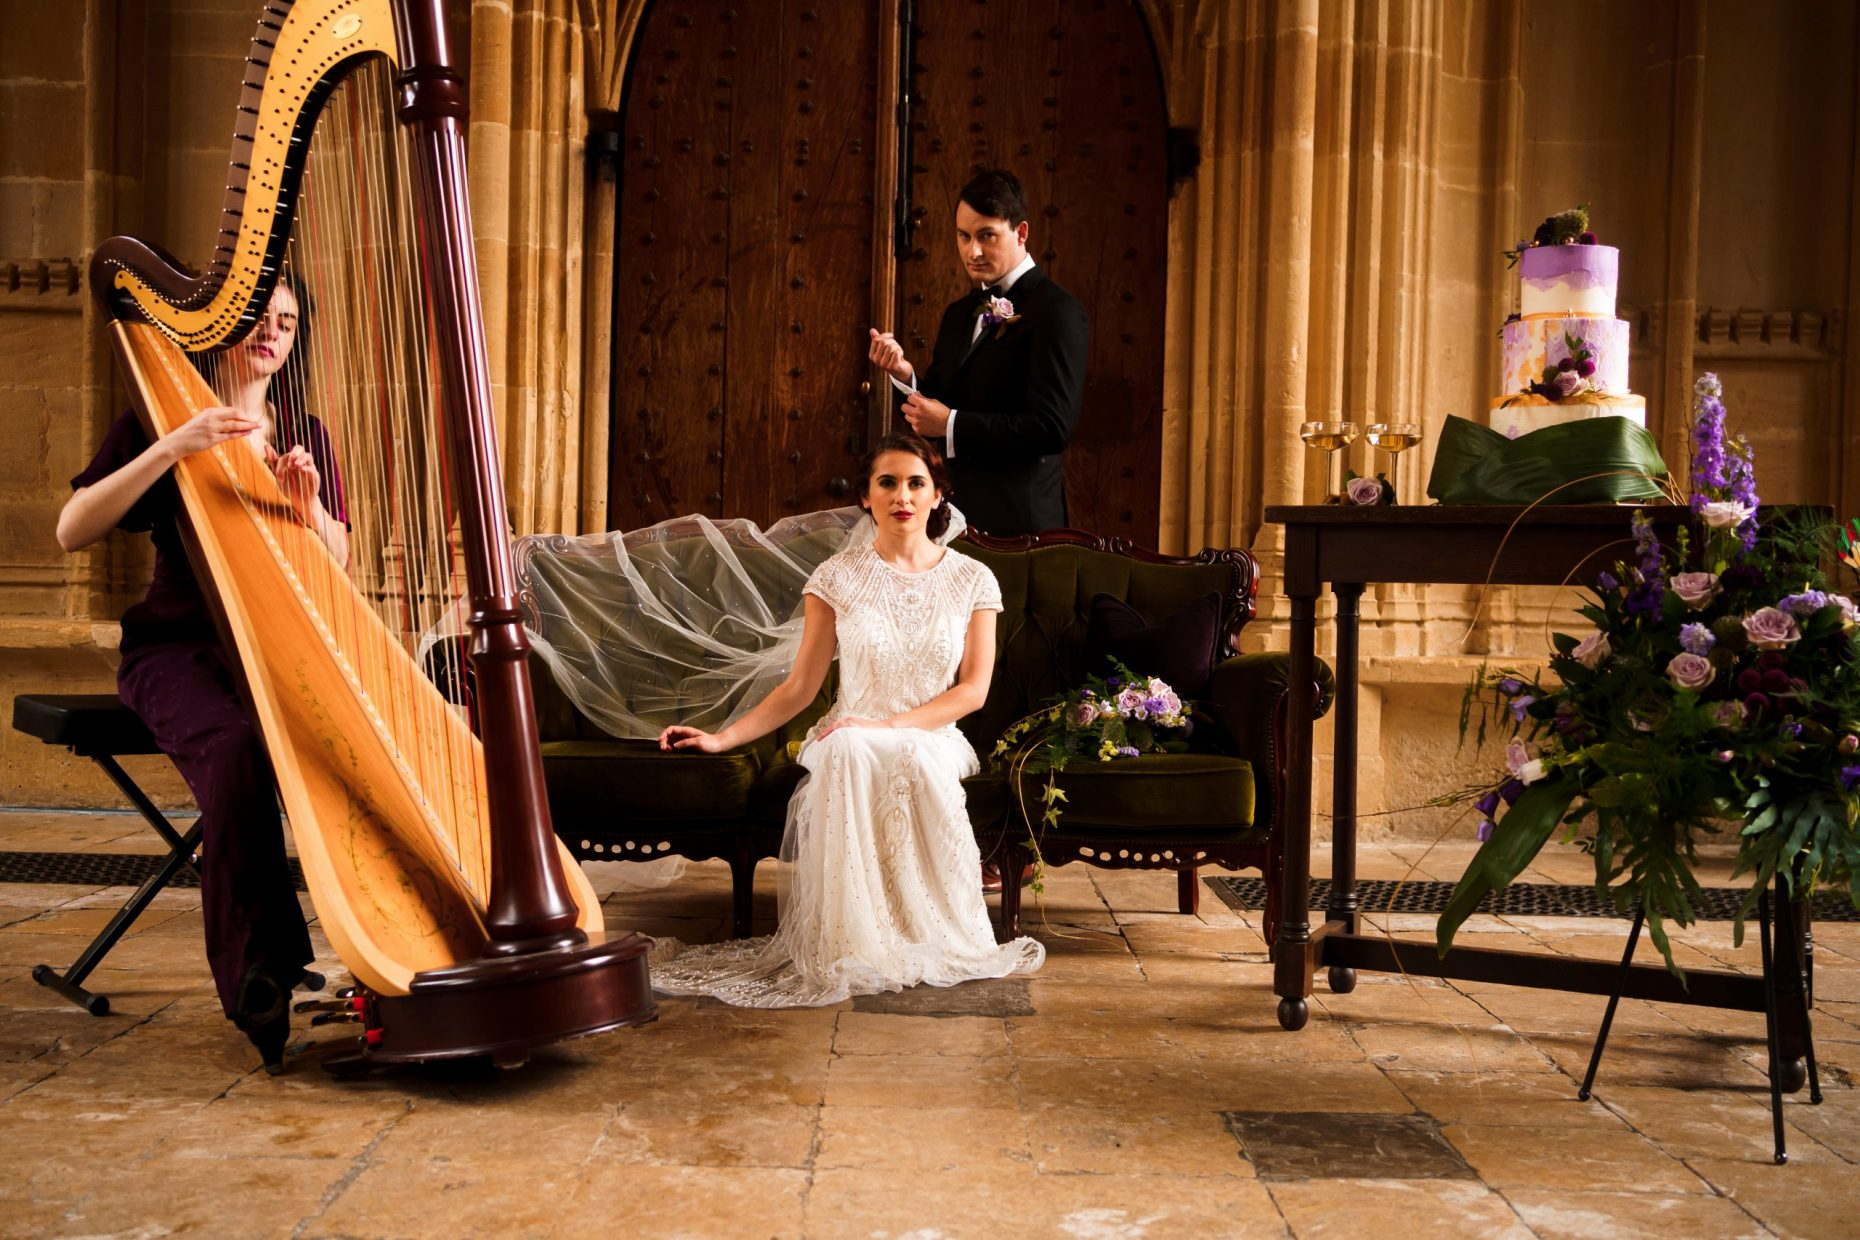 Bride and groom portraits at the Bodleian Library, Oxford